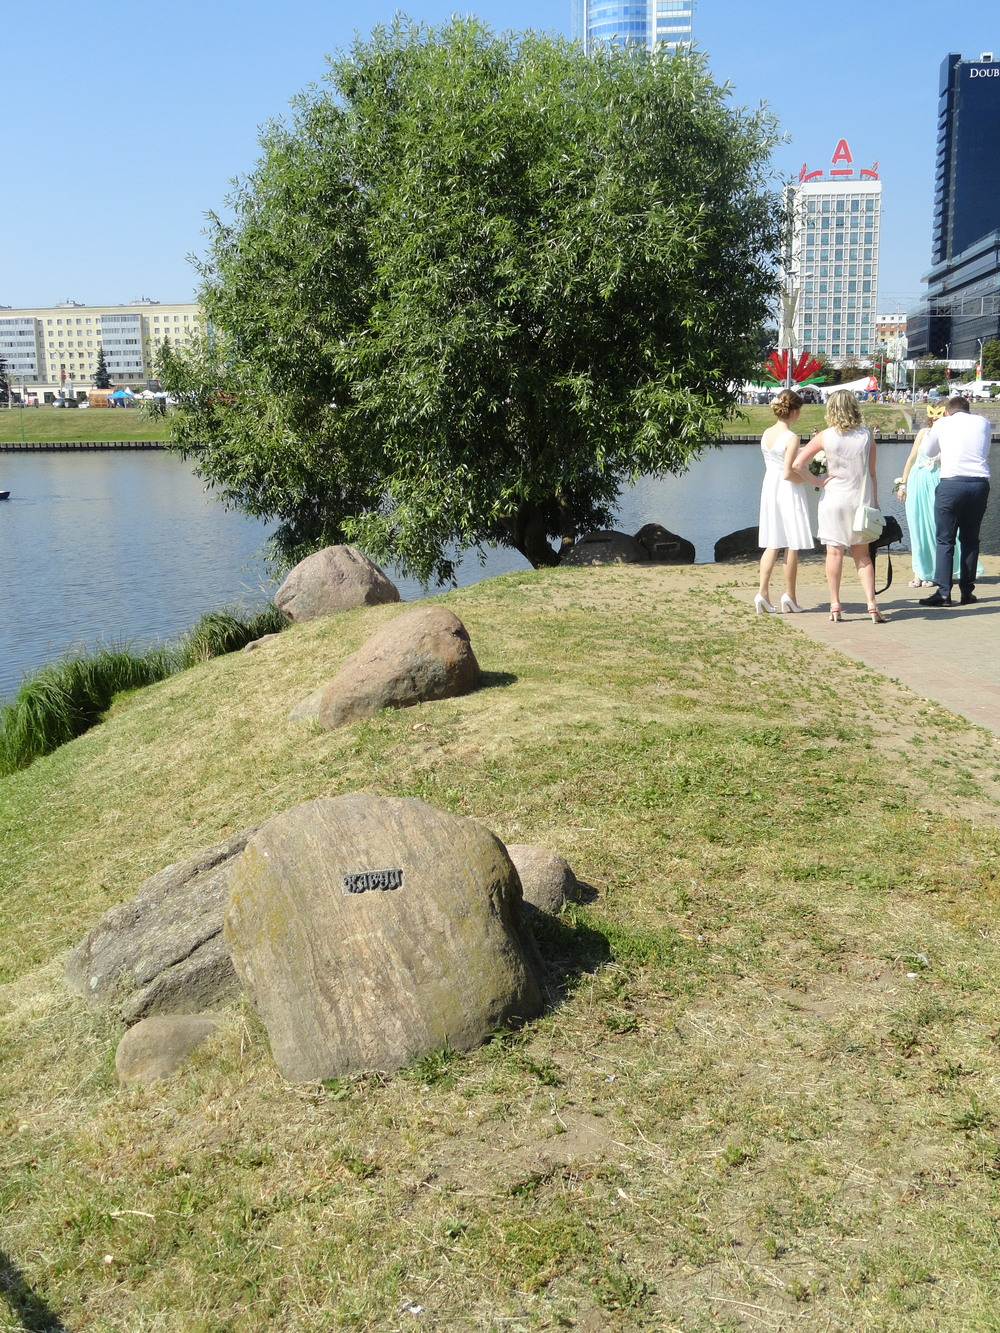 These rocks, brought back from Afghanistan, each bear the name of the place where a Belarusian soldier was killed.